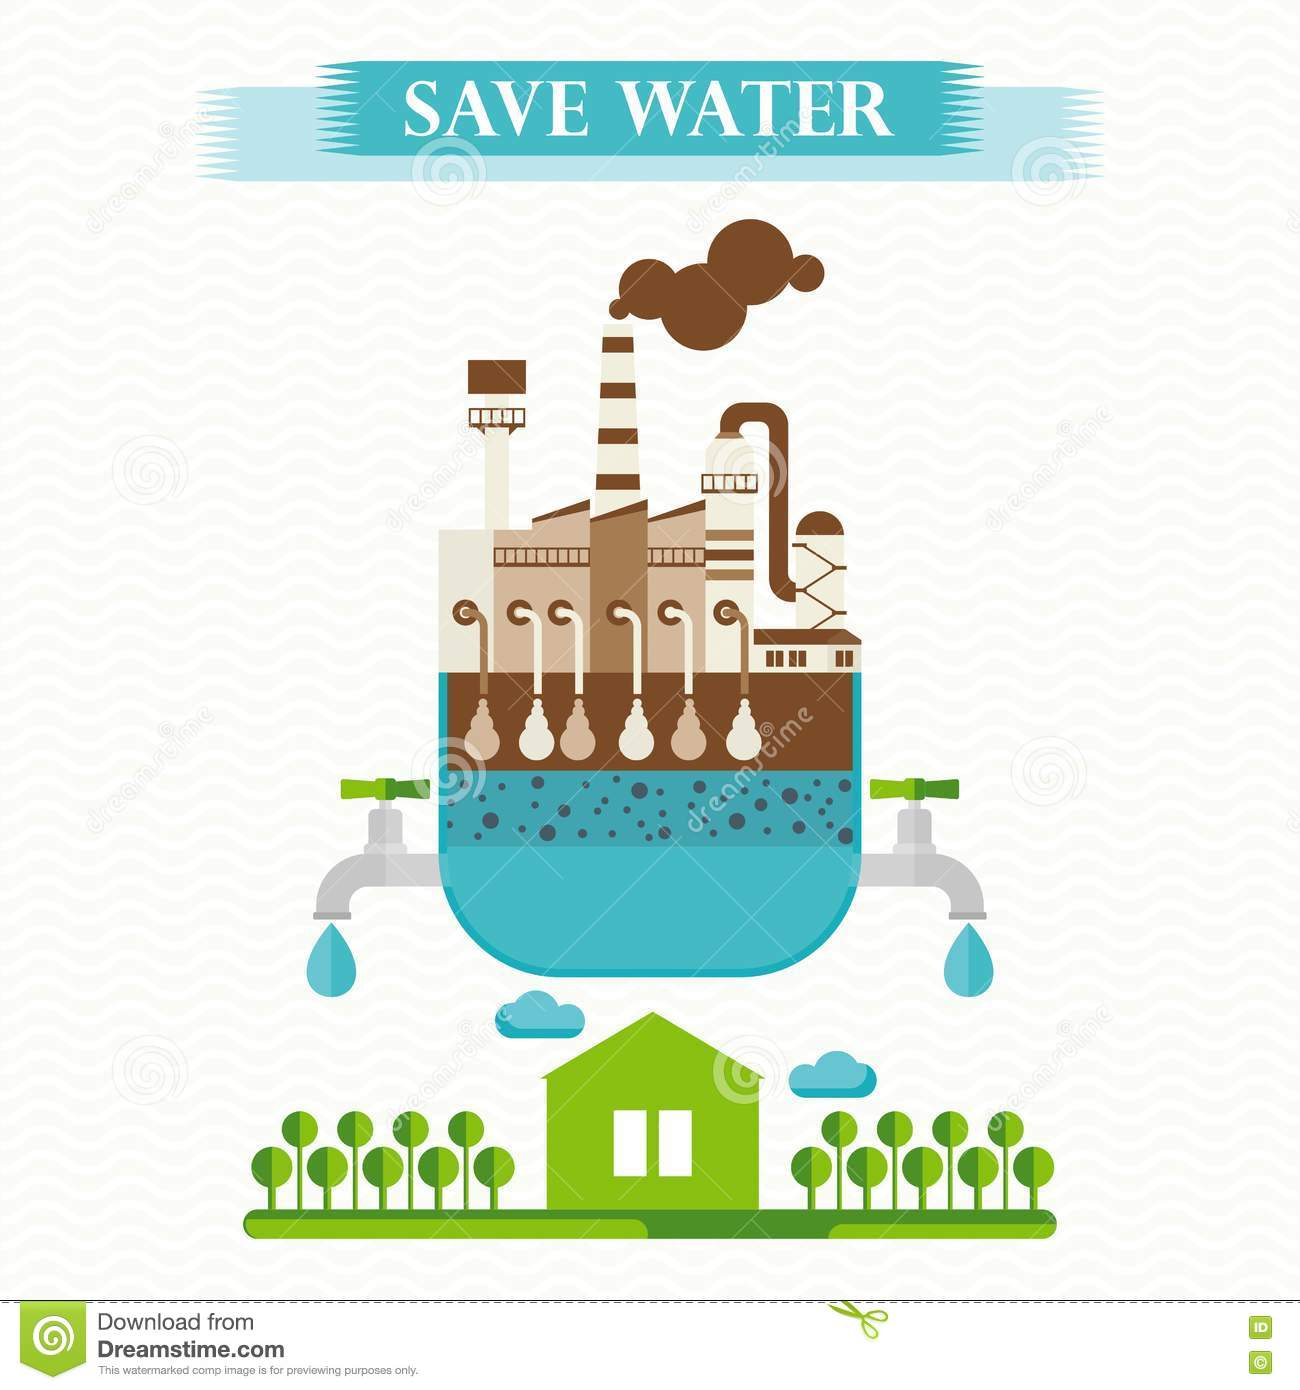 Poster design on save water - Background Concept Design Eco Flat Illustration Purification Save Vector Water